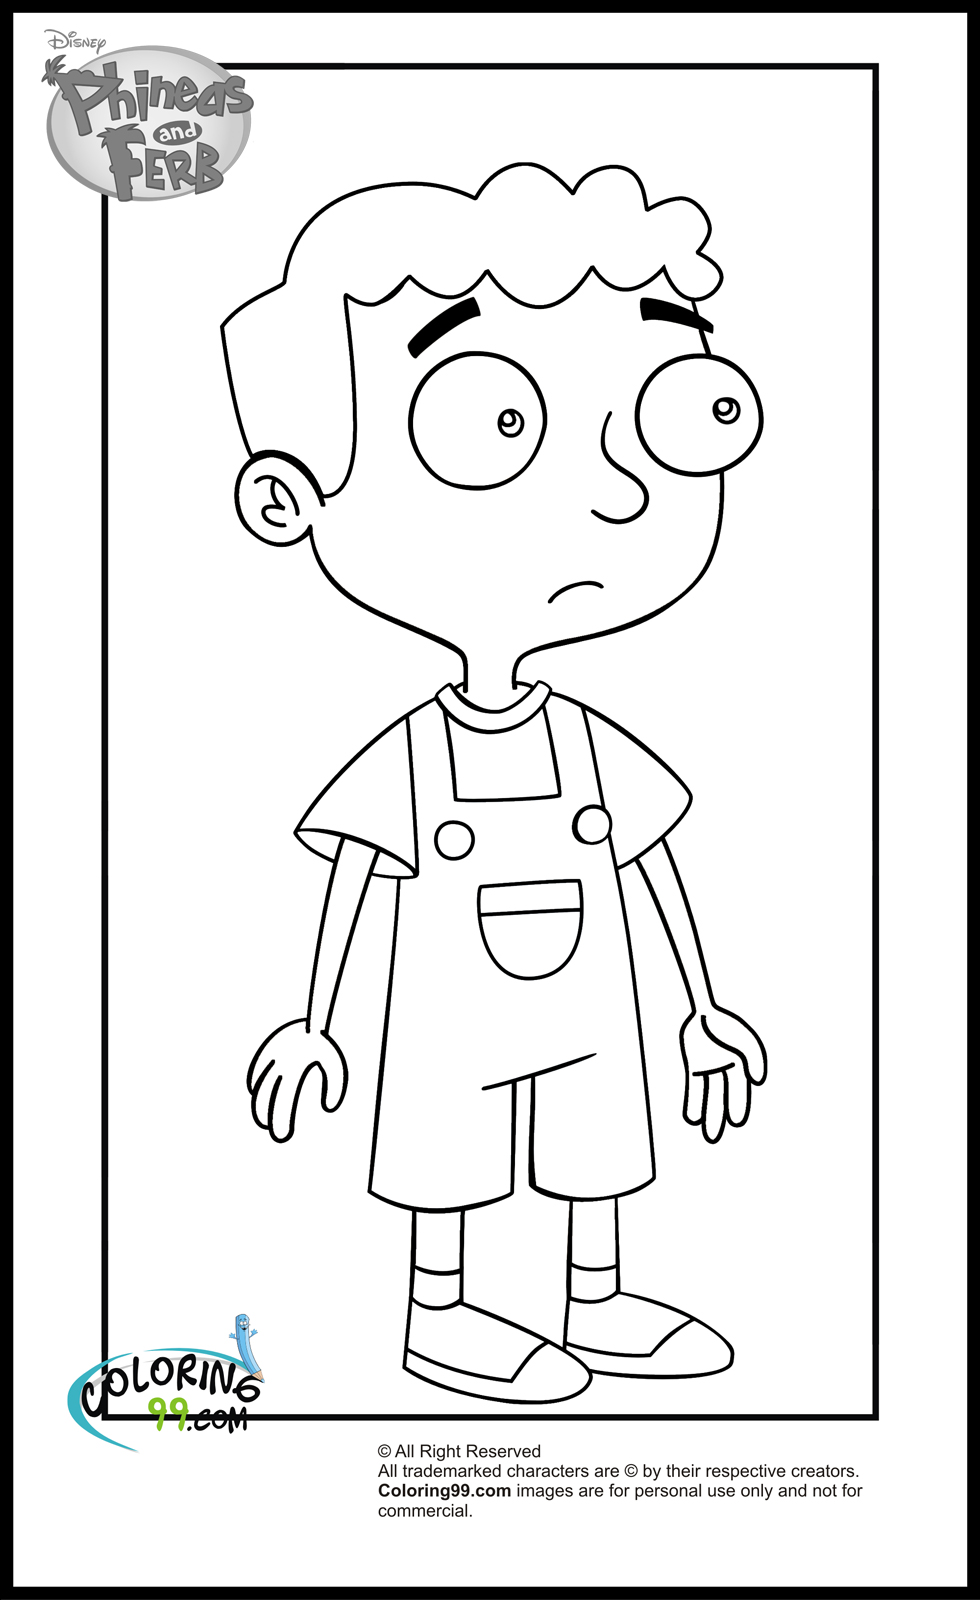 phineas and ferb coloring pages phineas and ferb coloring pages and coloring phineas ferb pages